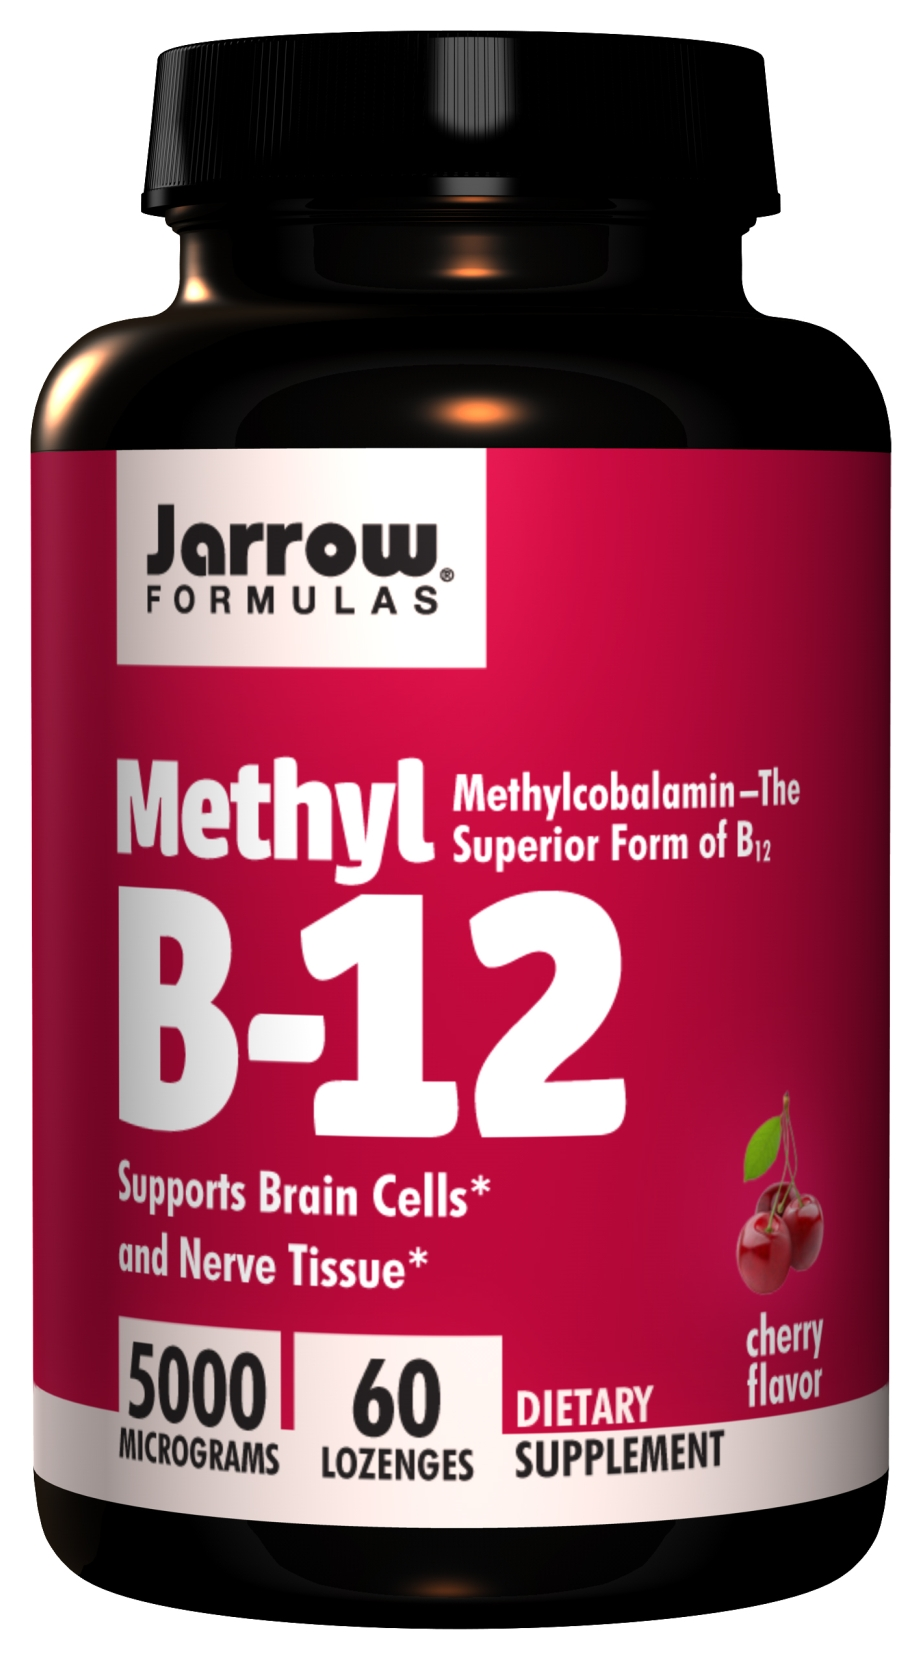 Methyl B-12 5000 mcg 60 Lozenges by Jarrow Formulas